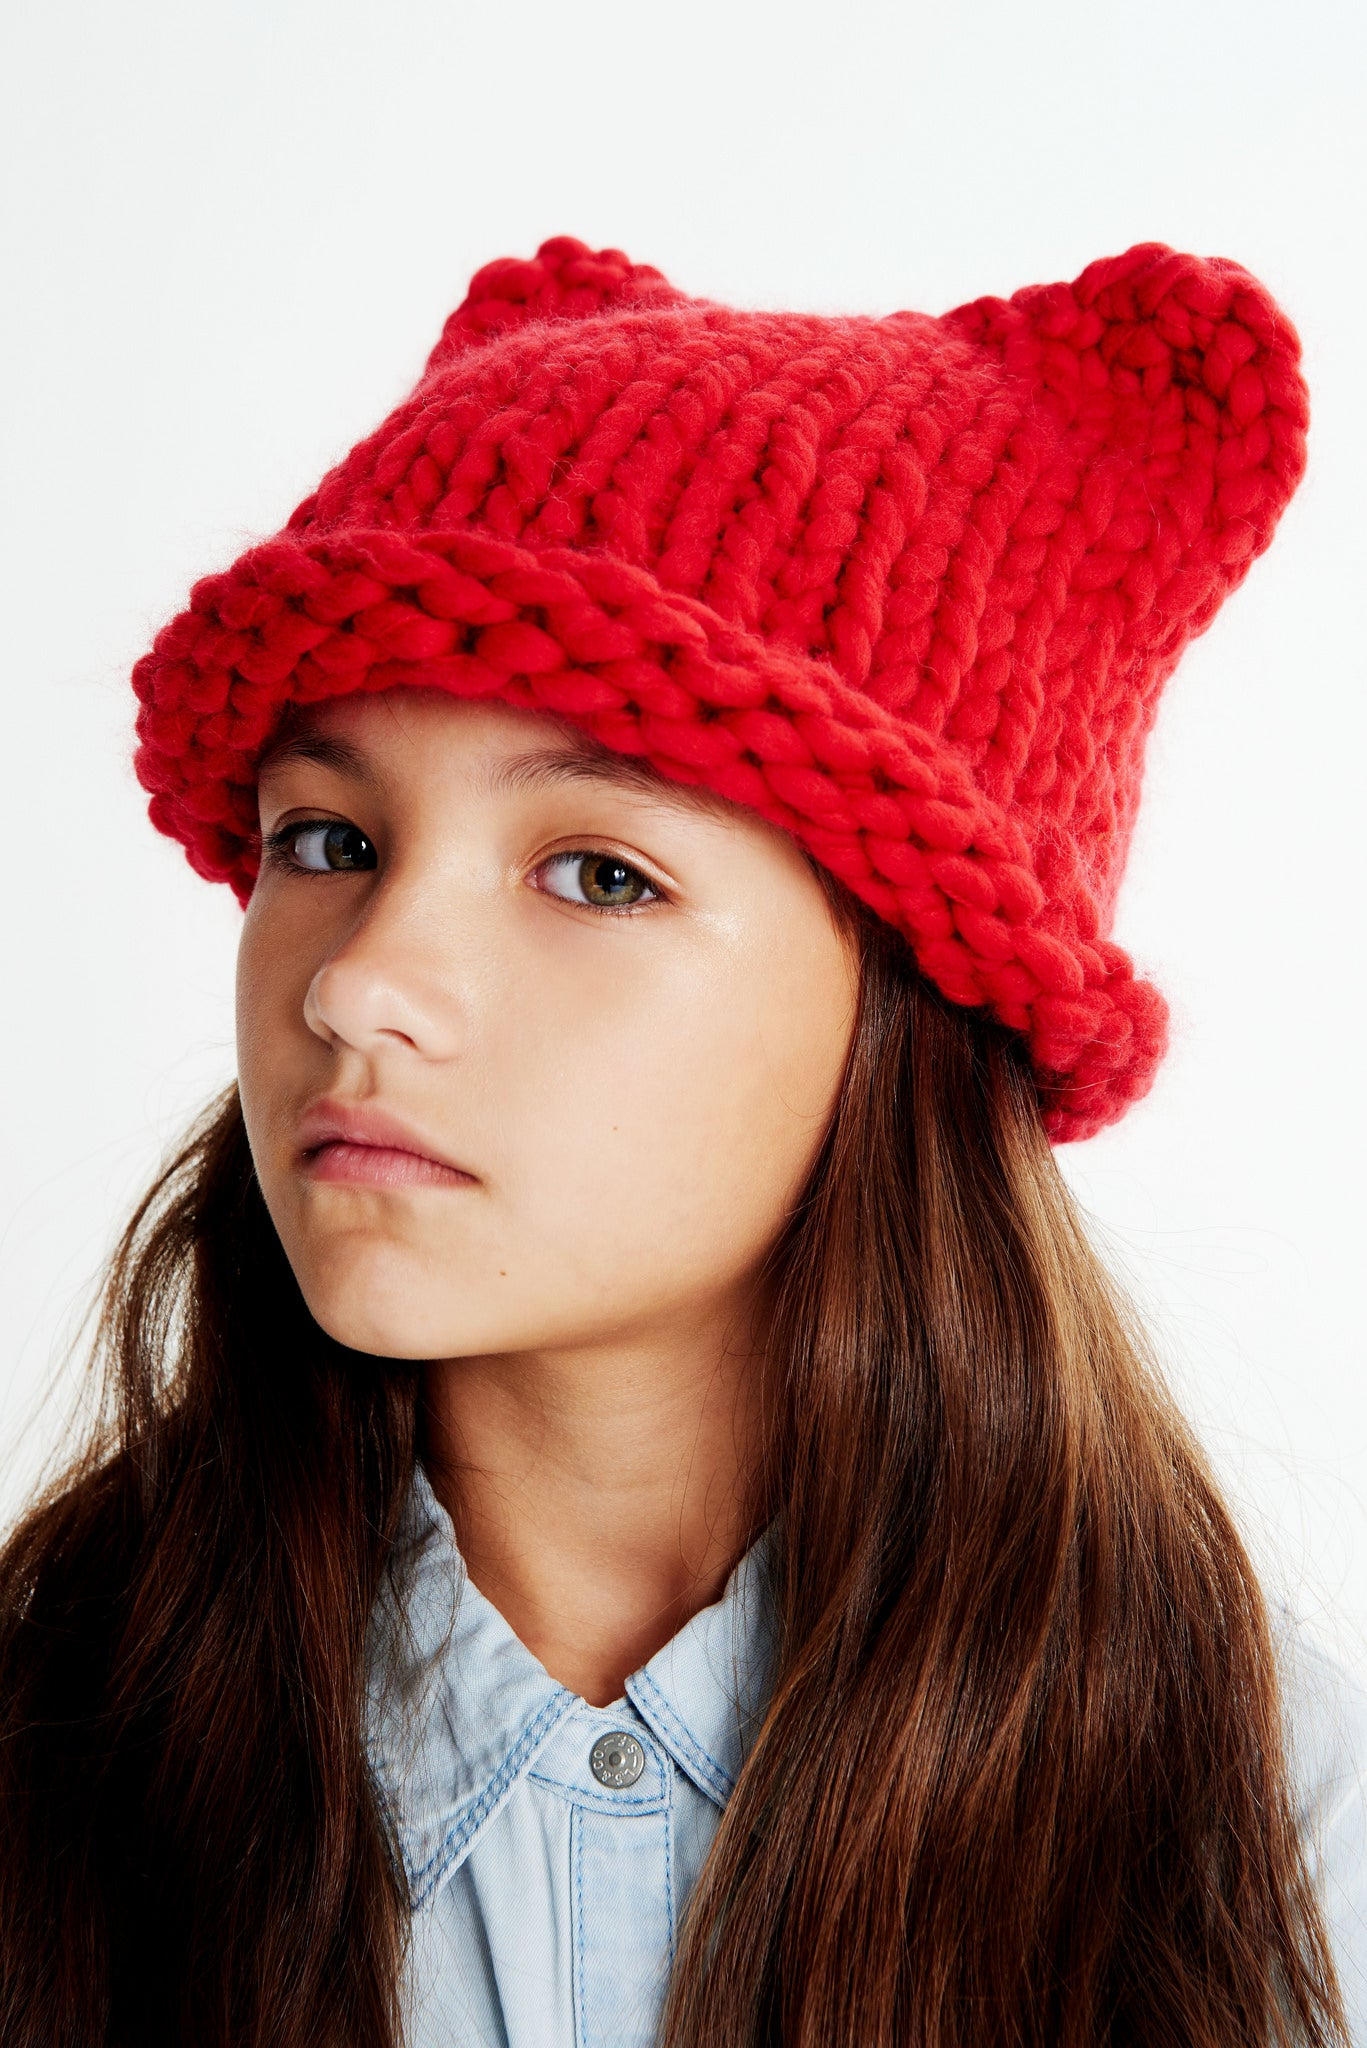 Mini Kitty Hat 5-8 years - Merino